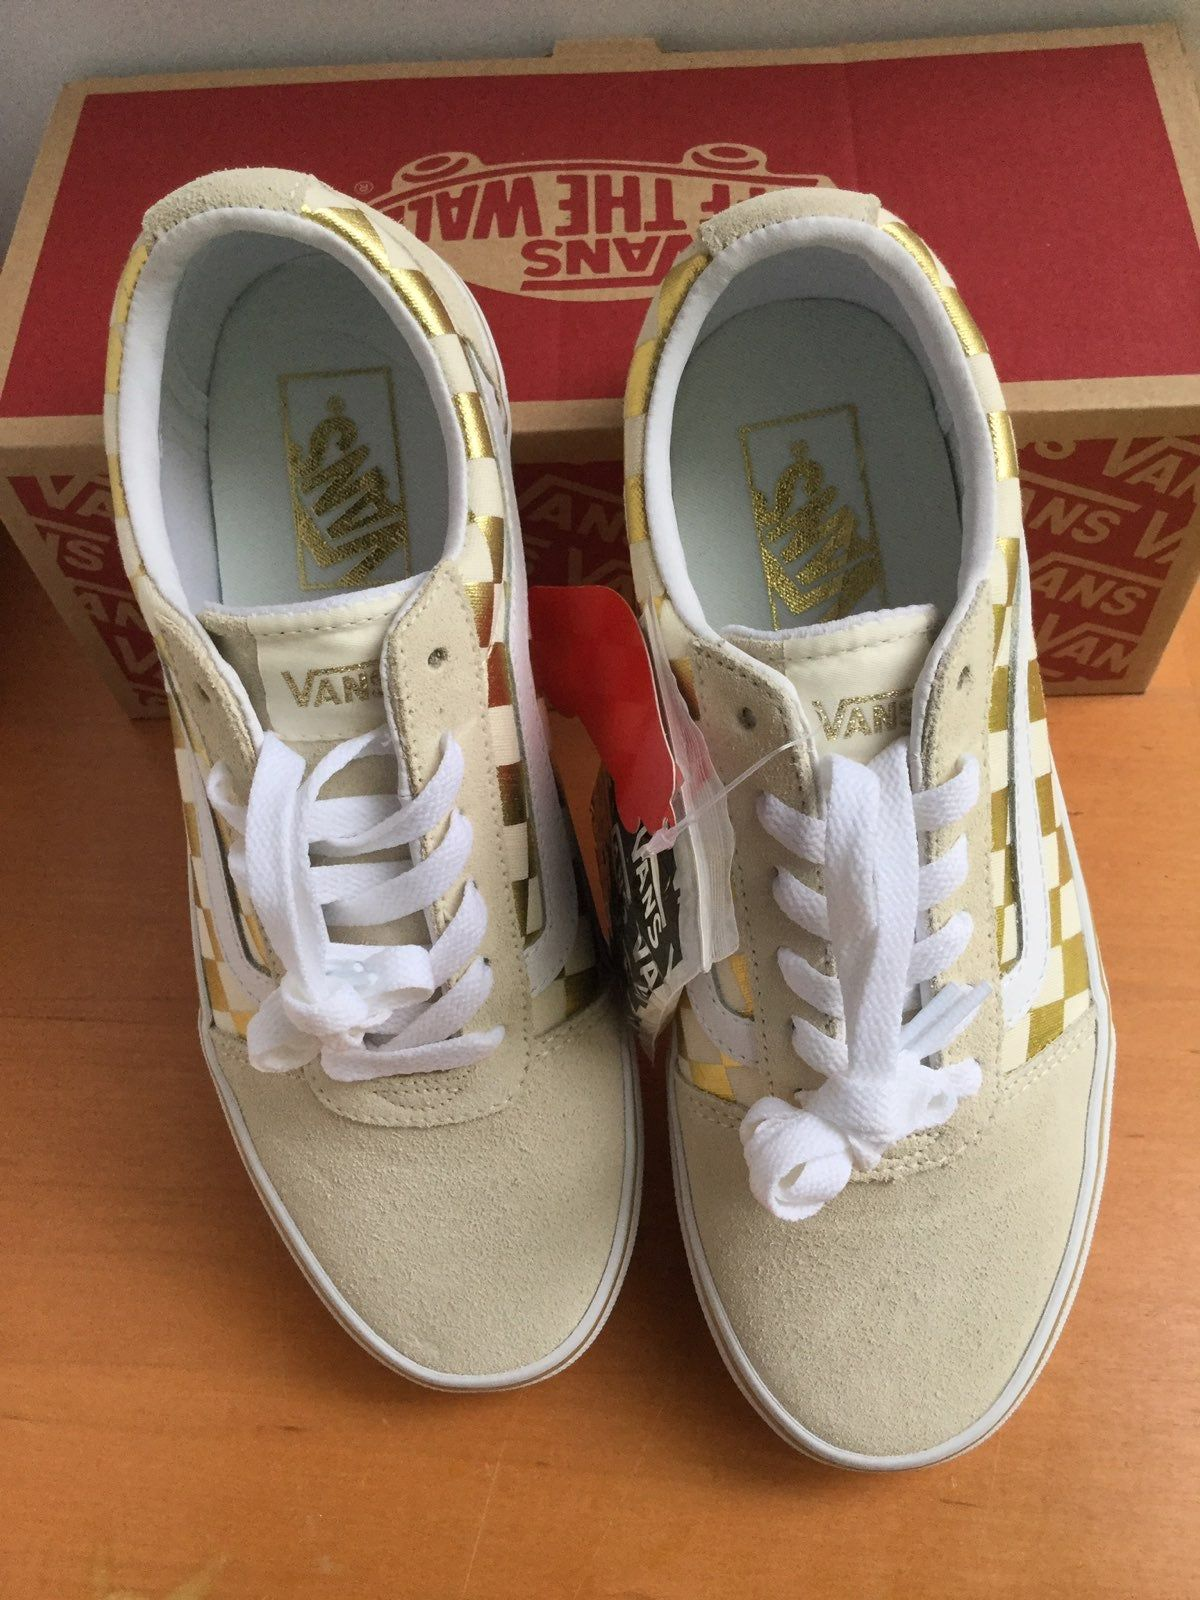 Skater Shoes Size 6M. Brand New, unworn